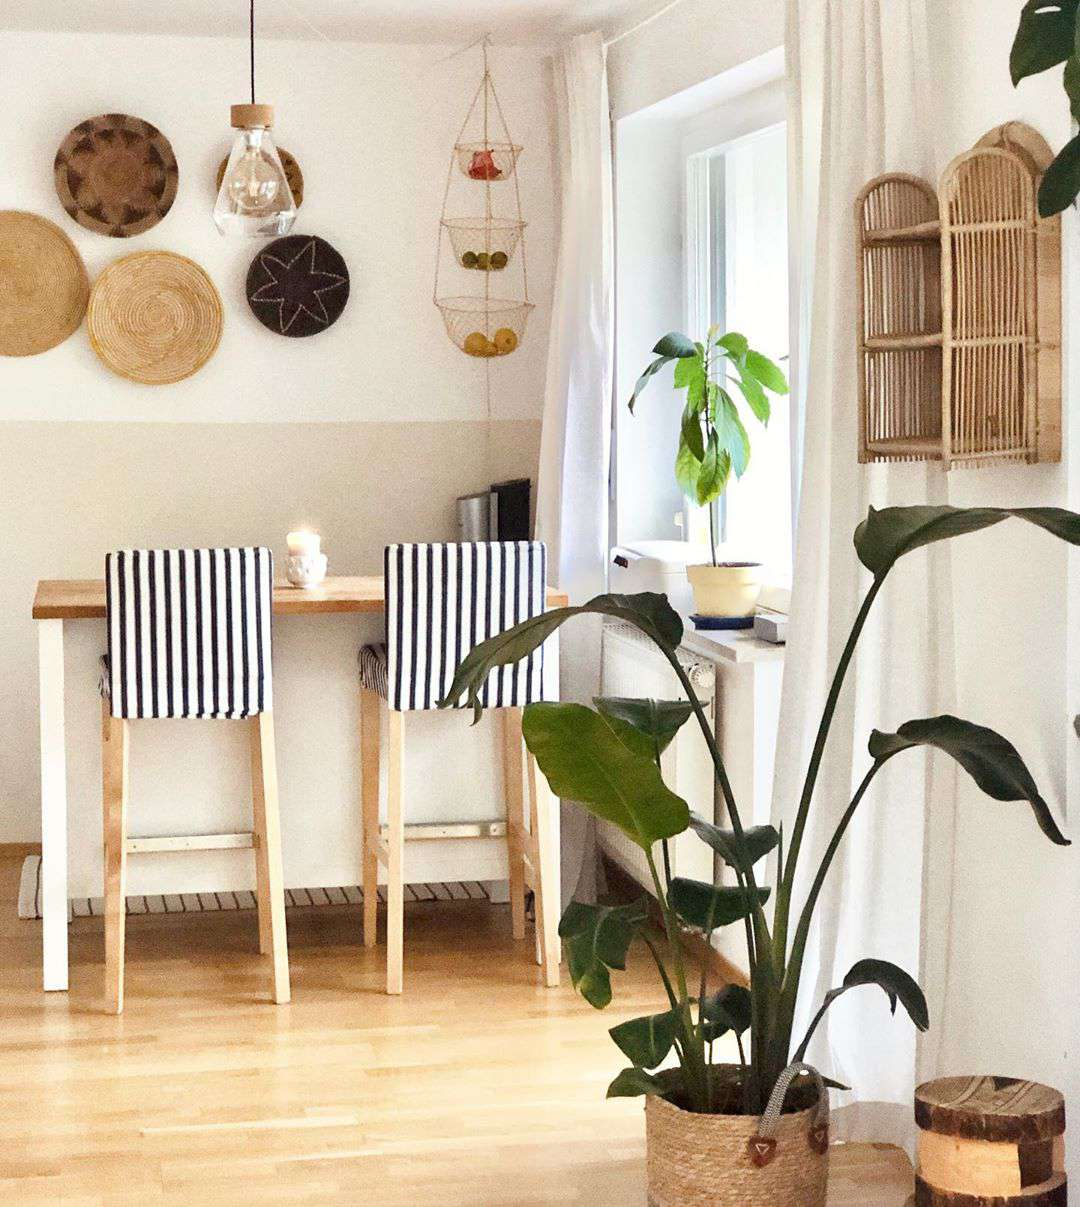 Boho style breakfast bar with baskets on the wall